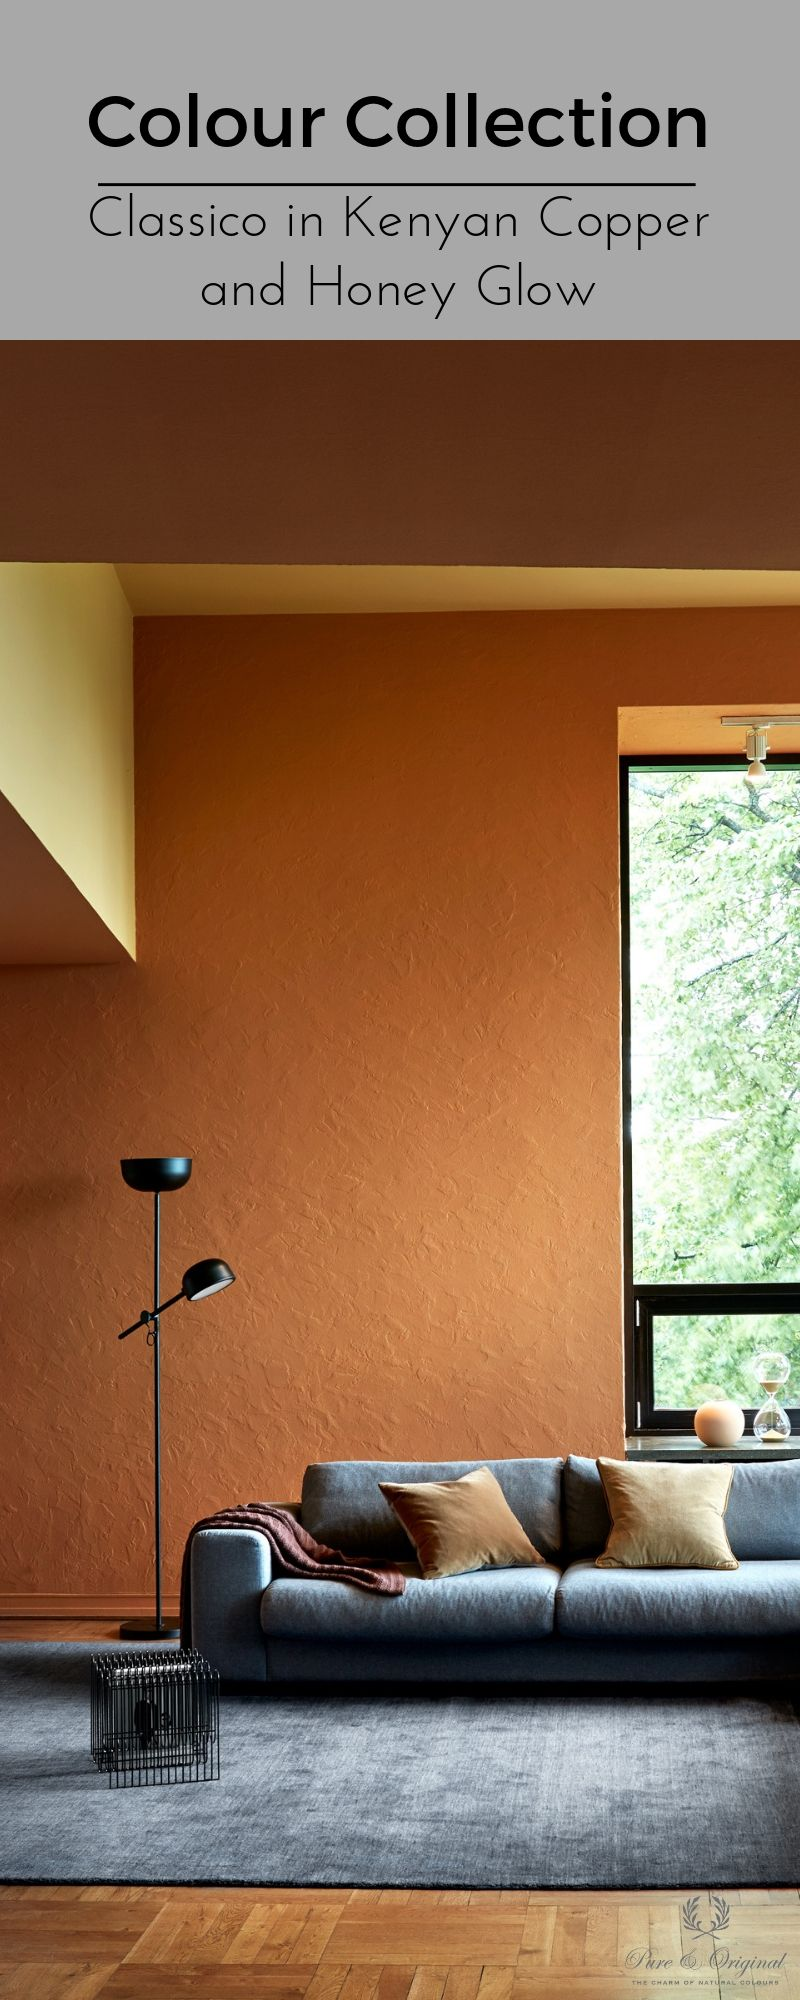 On The Walls The Classico Paint In The Colour Kenyan Copper And Honey Glow Design Warm Colors Color Collection